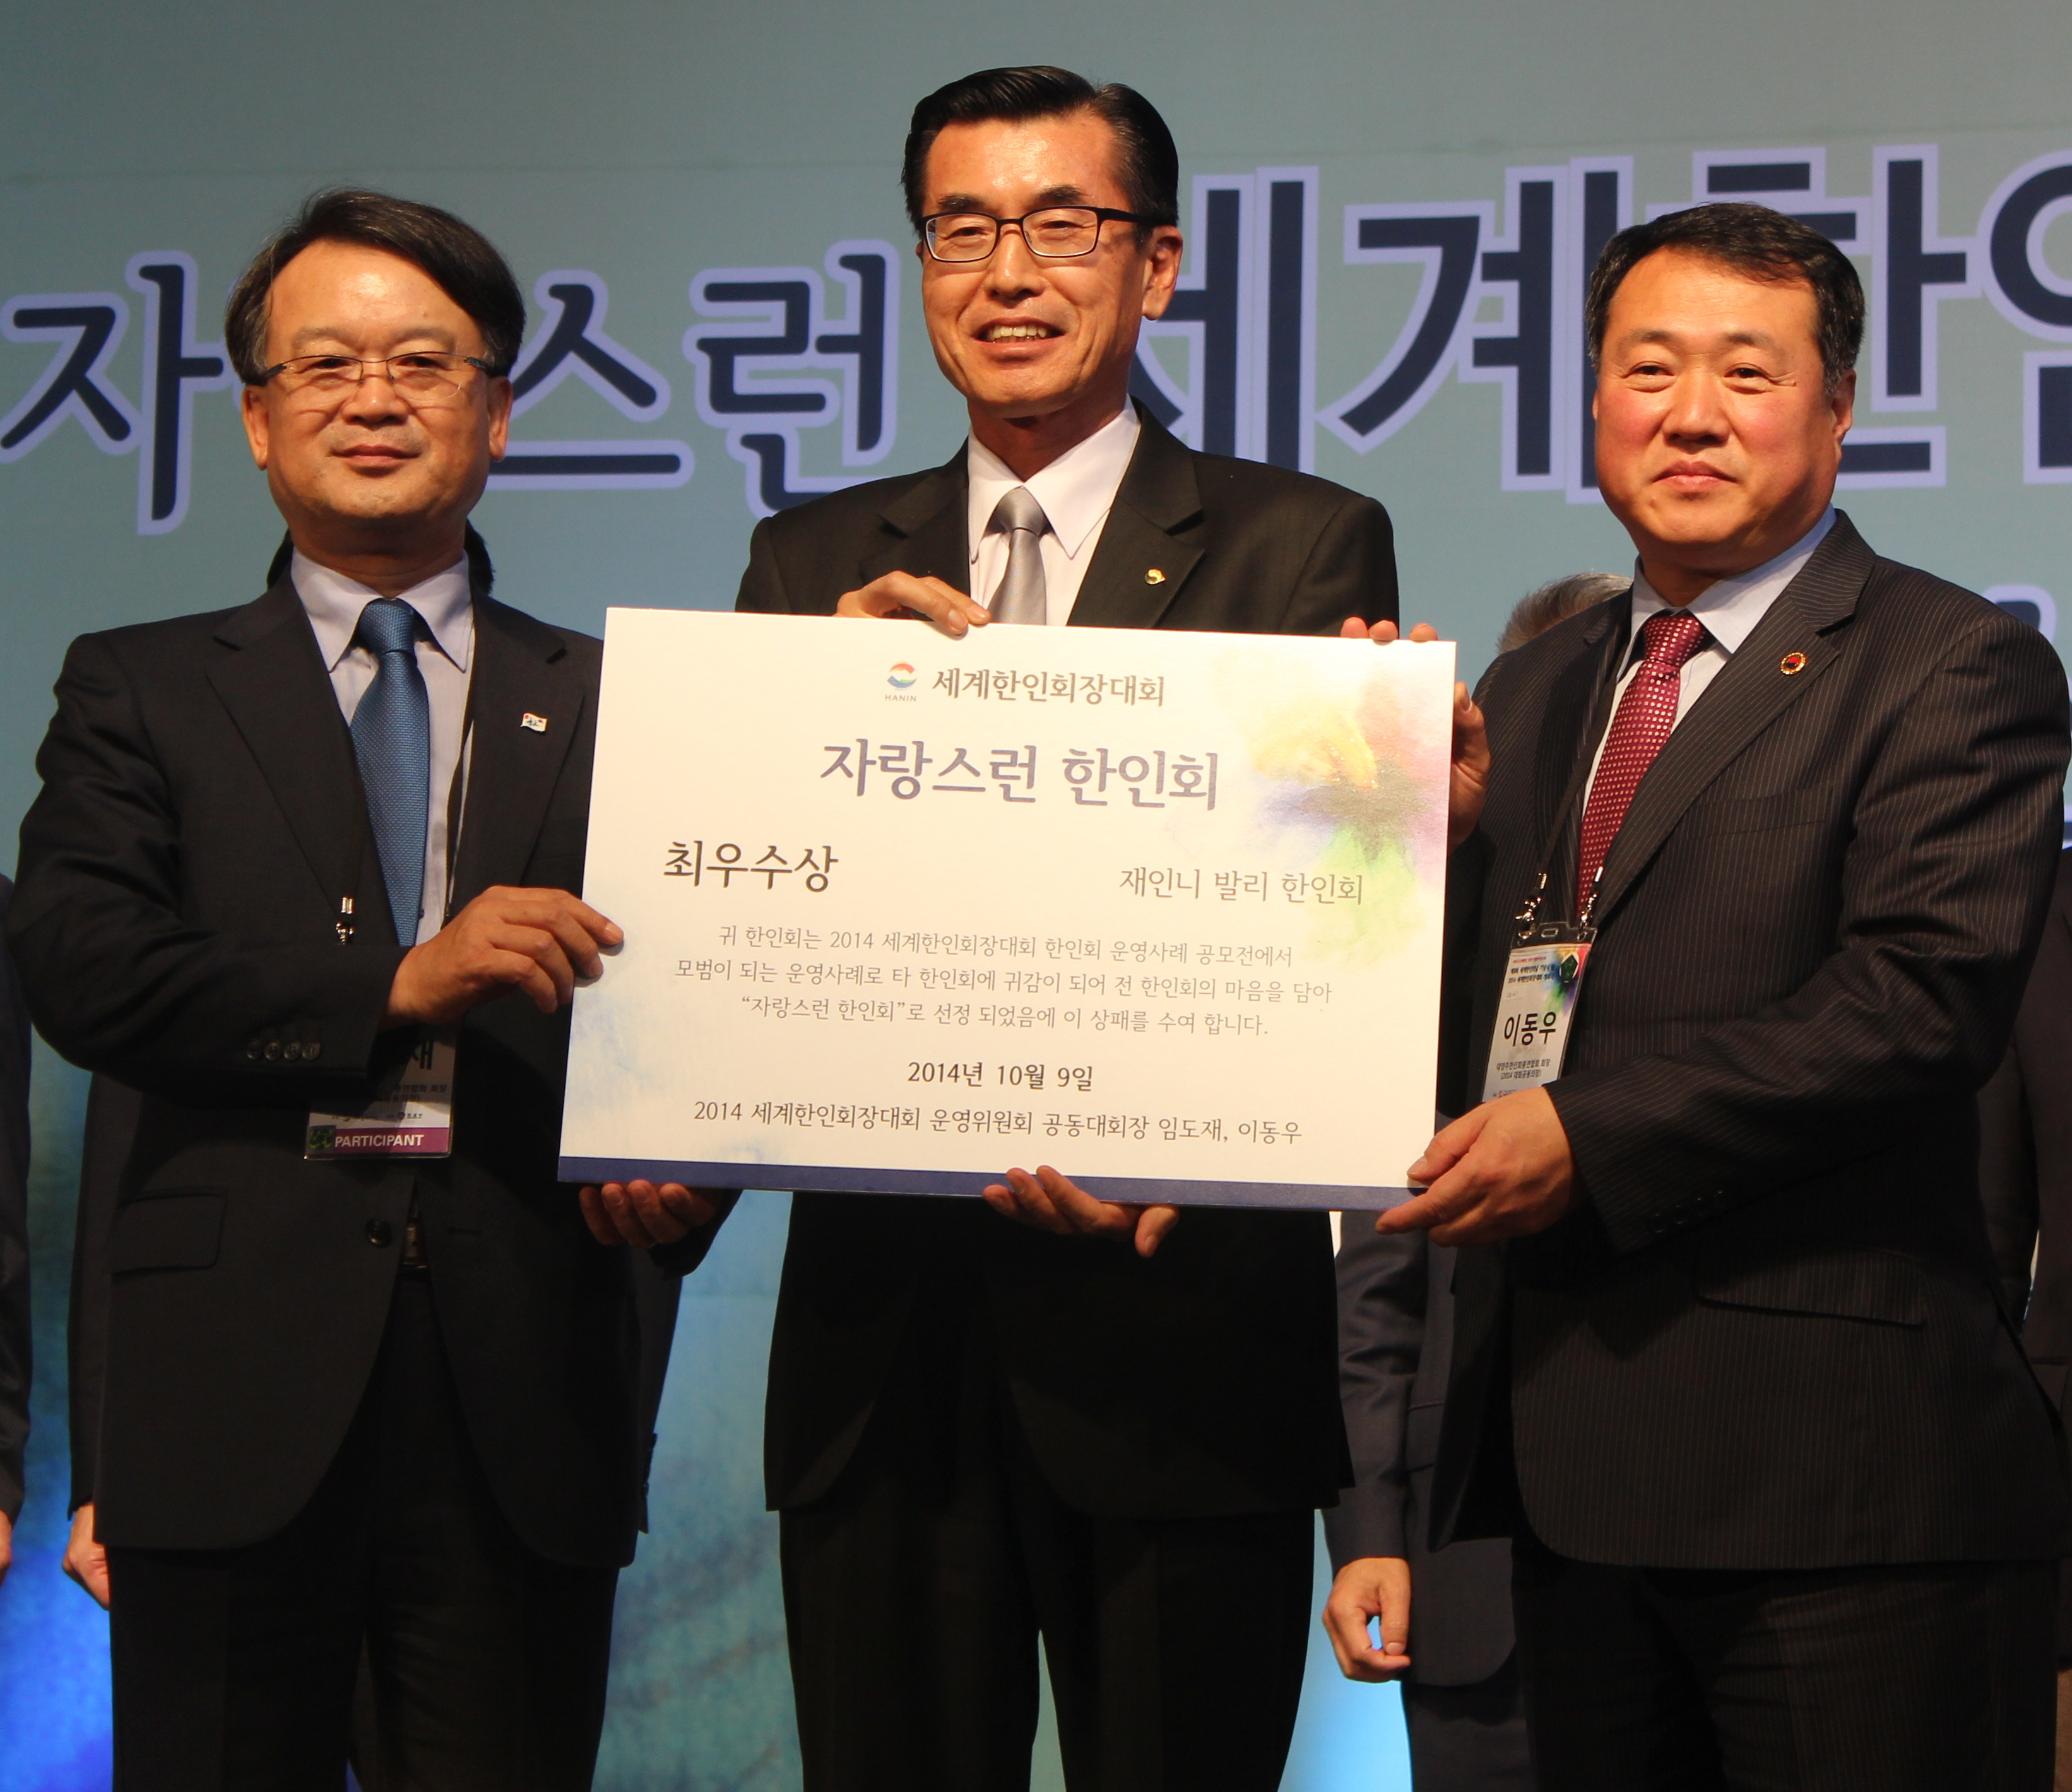 Yim Do-jae (left), president of Africa and Middle East Korean Association and Lee Dong-woo (right), president of Oceania Korean Association flank Chang Byoung-rok, president of Bali Korean Association and winner of the Best Korean Association Award.